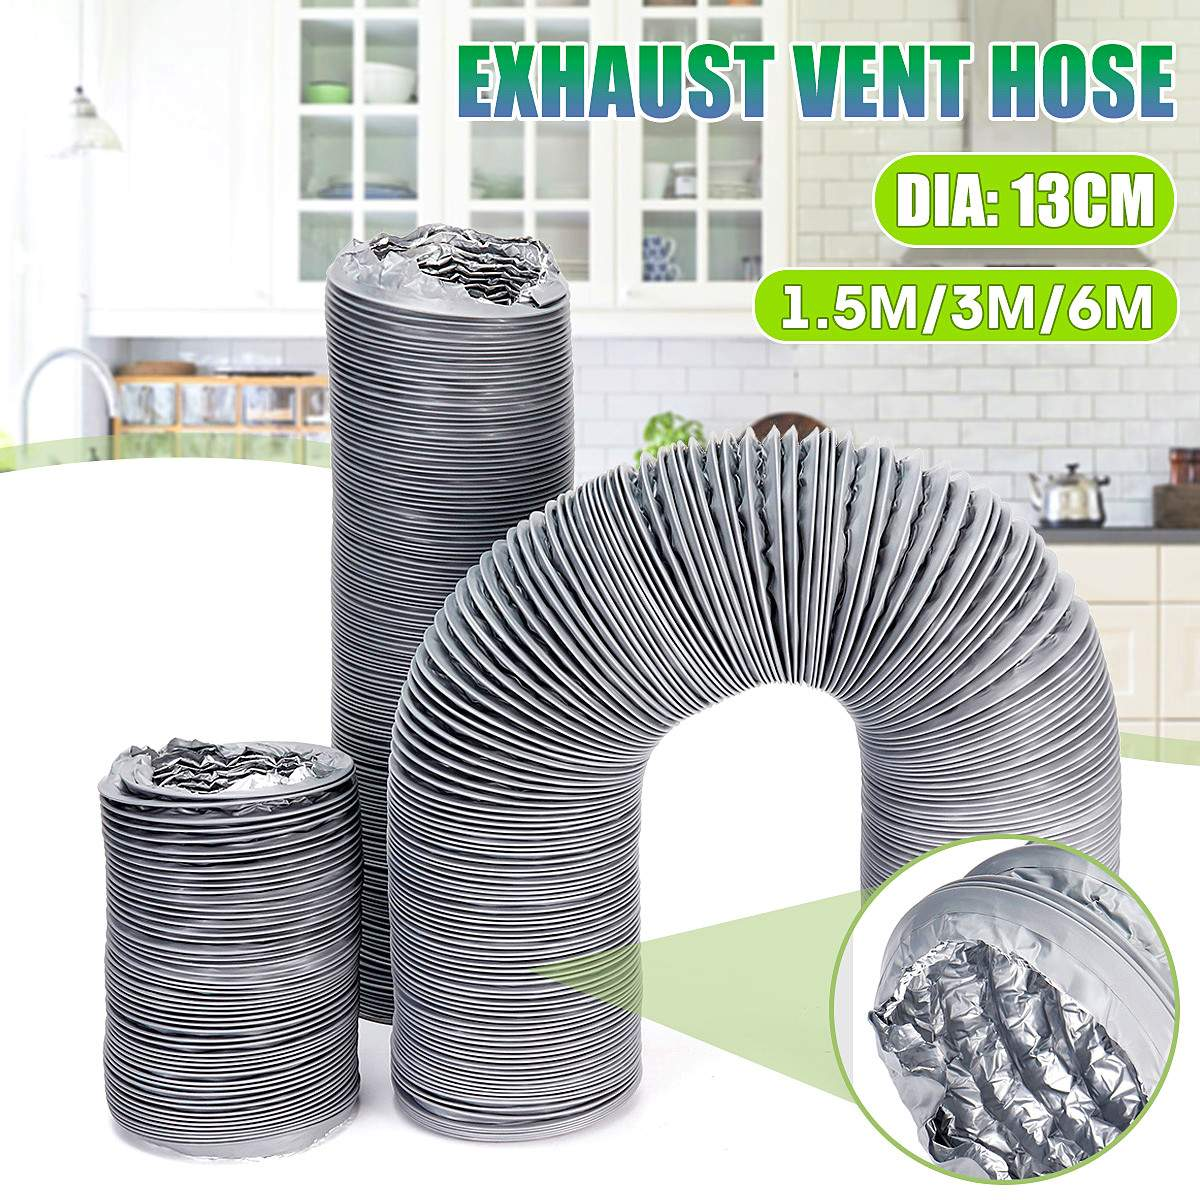 New 5inch 150/300/600cm Flexible Exhaust Vent Tube Hose PVC Aluminum Air Ducting Ventilation Household Air System Vent Bathroom